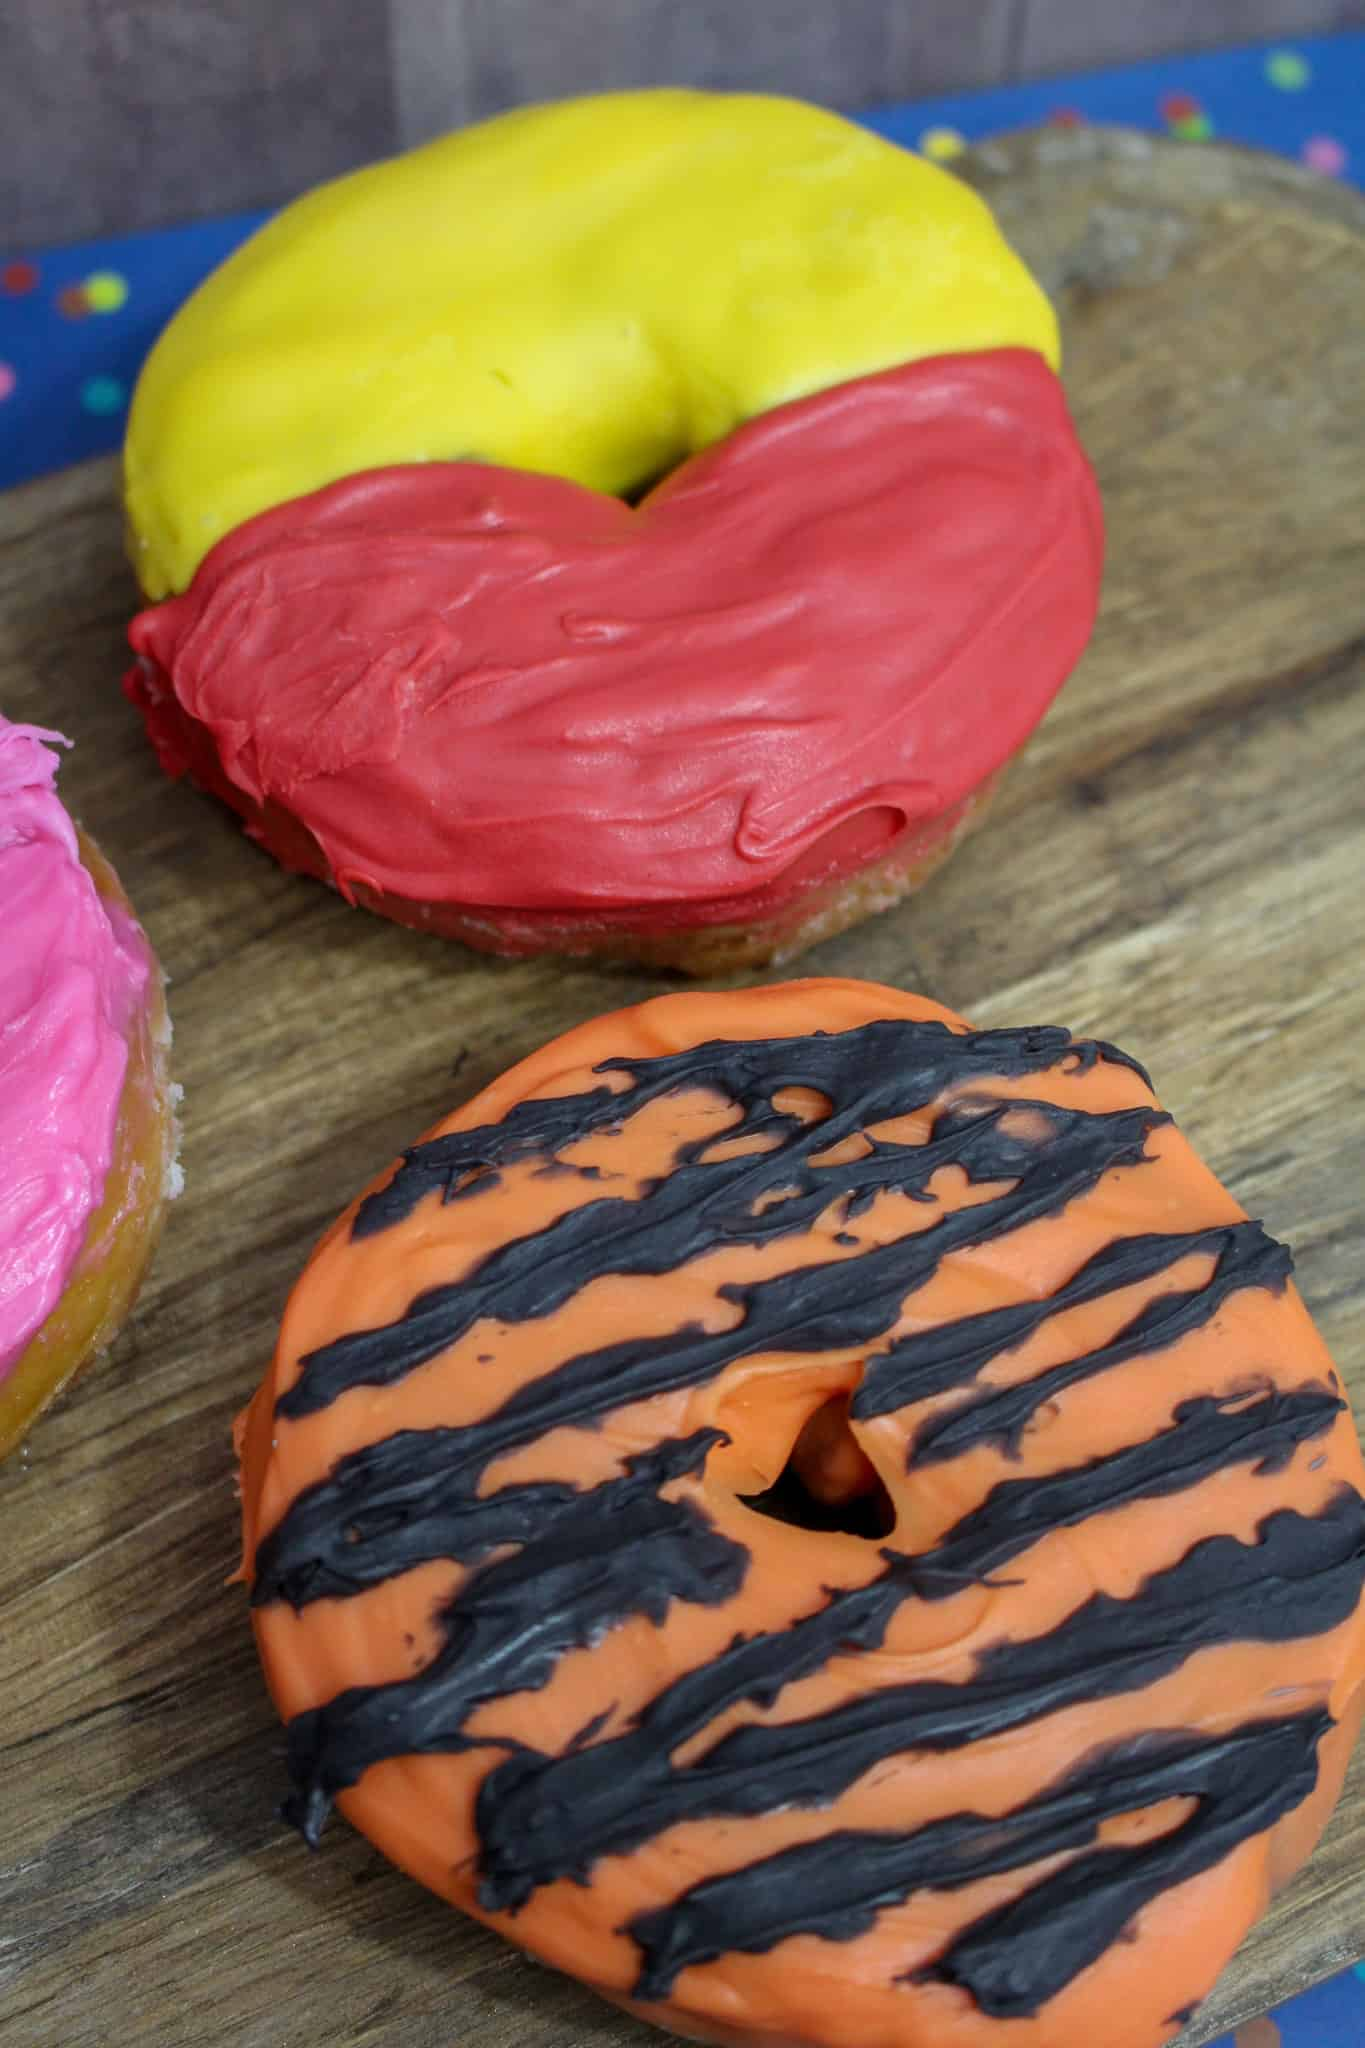 These Winnie the Pooh Doughnuts are the perfect treat for any kid! The Christopher Robin movie is full of great life lessons as well as inspiration for these delicious Winnie the Pooh Doughnuts! #Doughnuts #winniethepooh #breakfast #easybreakfast